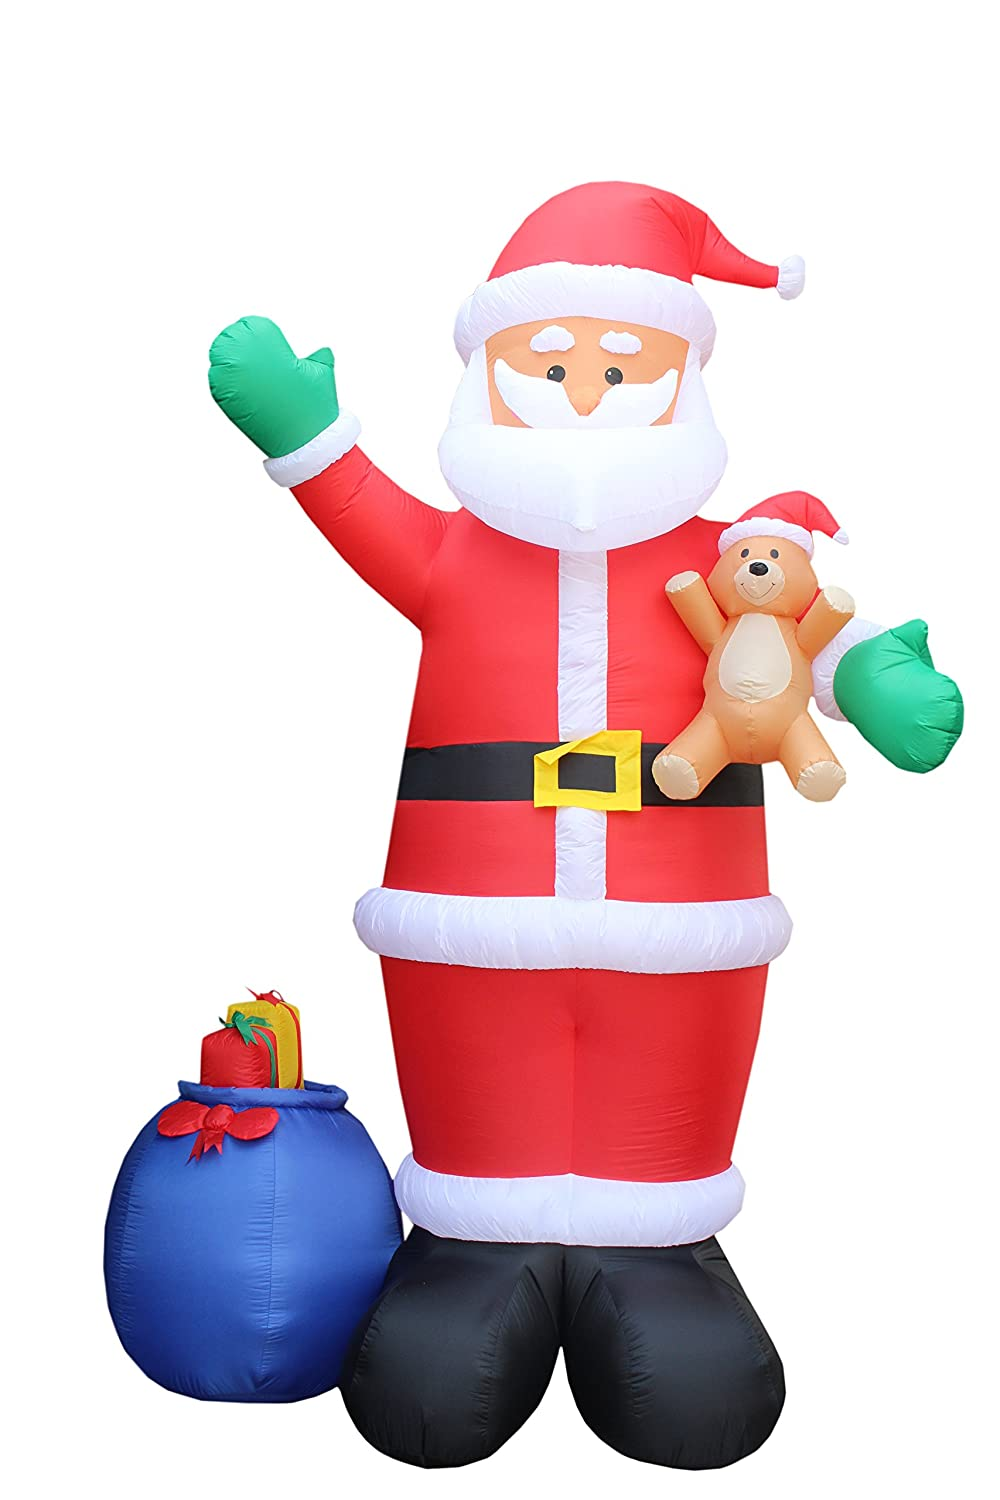 Gemmy inflatable airblown reindeer outdoor christmas decoration lowe - Amazon Com 12 Foot Christmas Inflatable Santa Claus With Gift Bag And Bear Yard Garden Decoration Home Kitchen